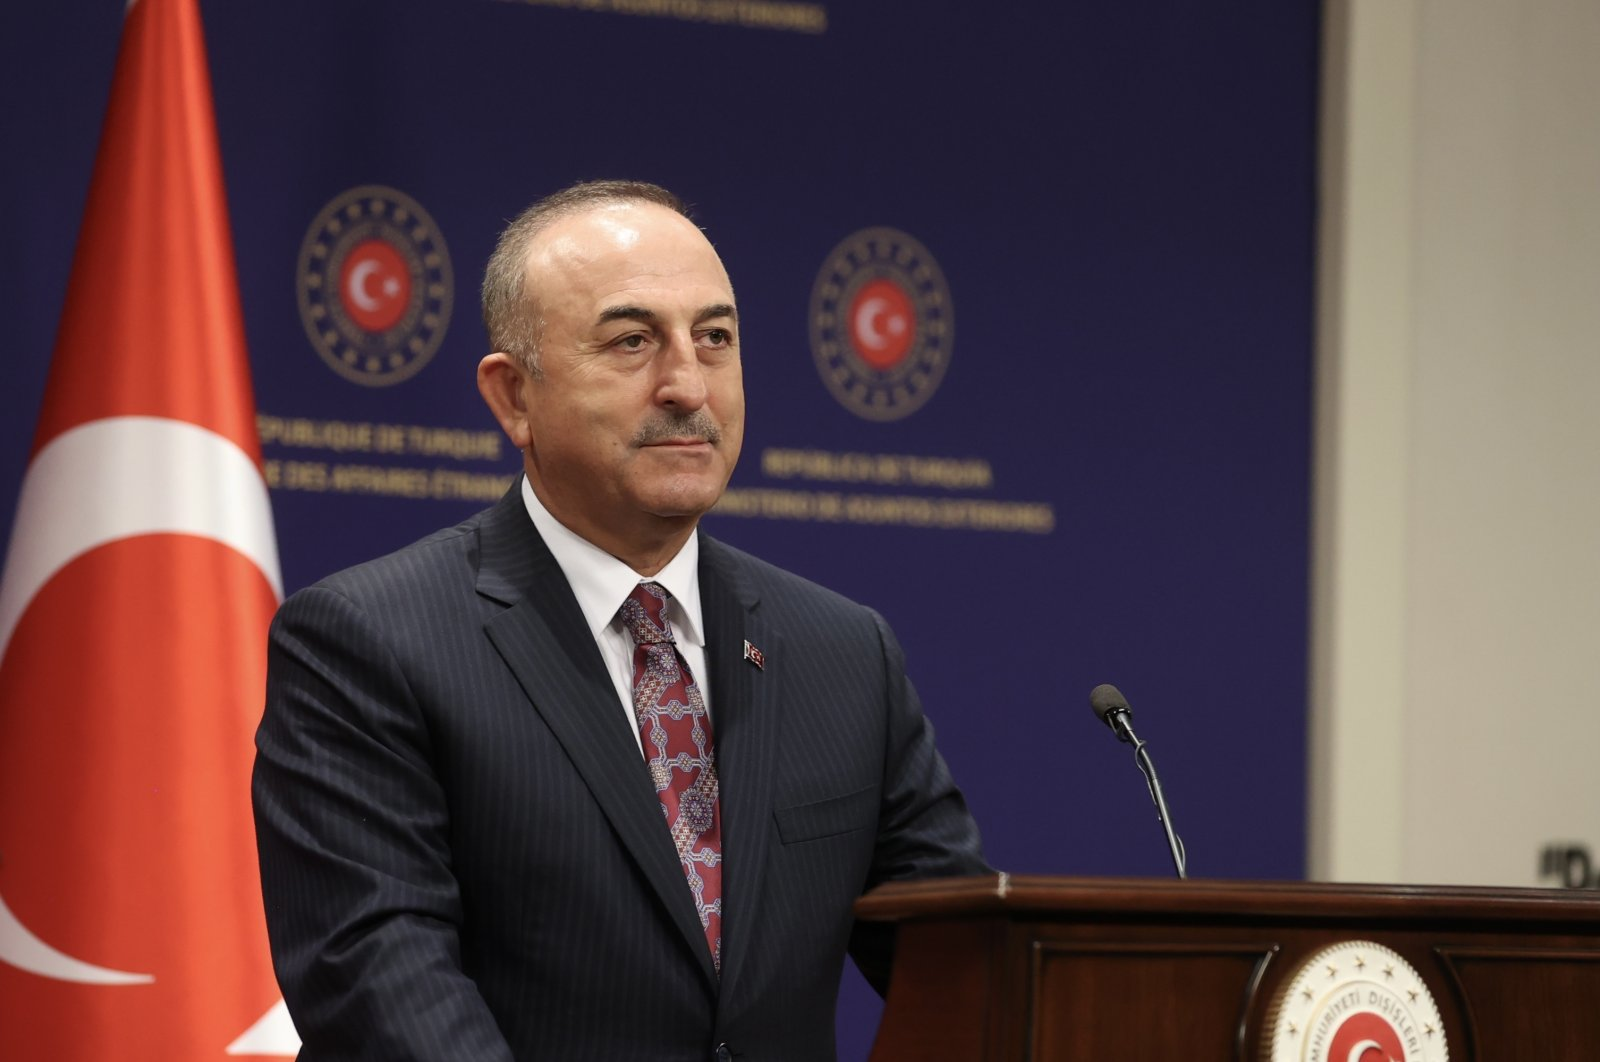 Foreign Minister Mevlüt Çavuşoğlu speaks in a joint news conference with Indonesian counterpart Retno Marsudi in Ankara, Tuesday, Oct. 12, 2021. (AA Photo)